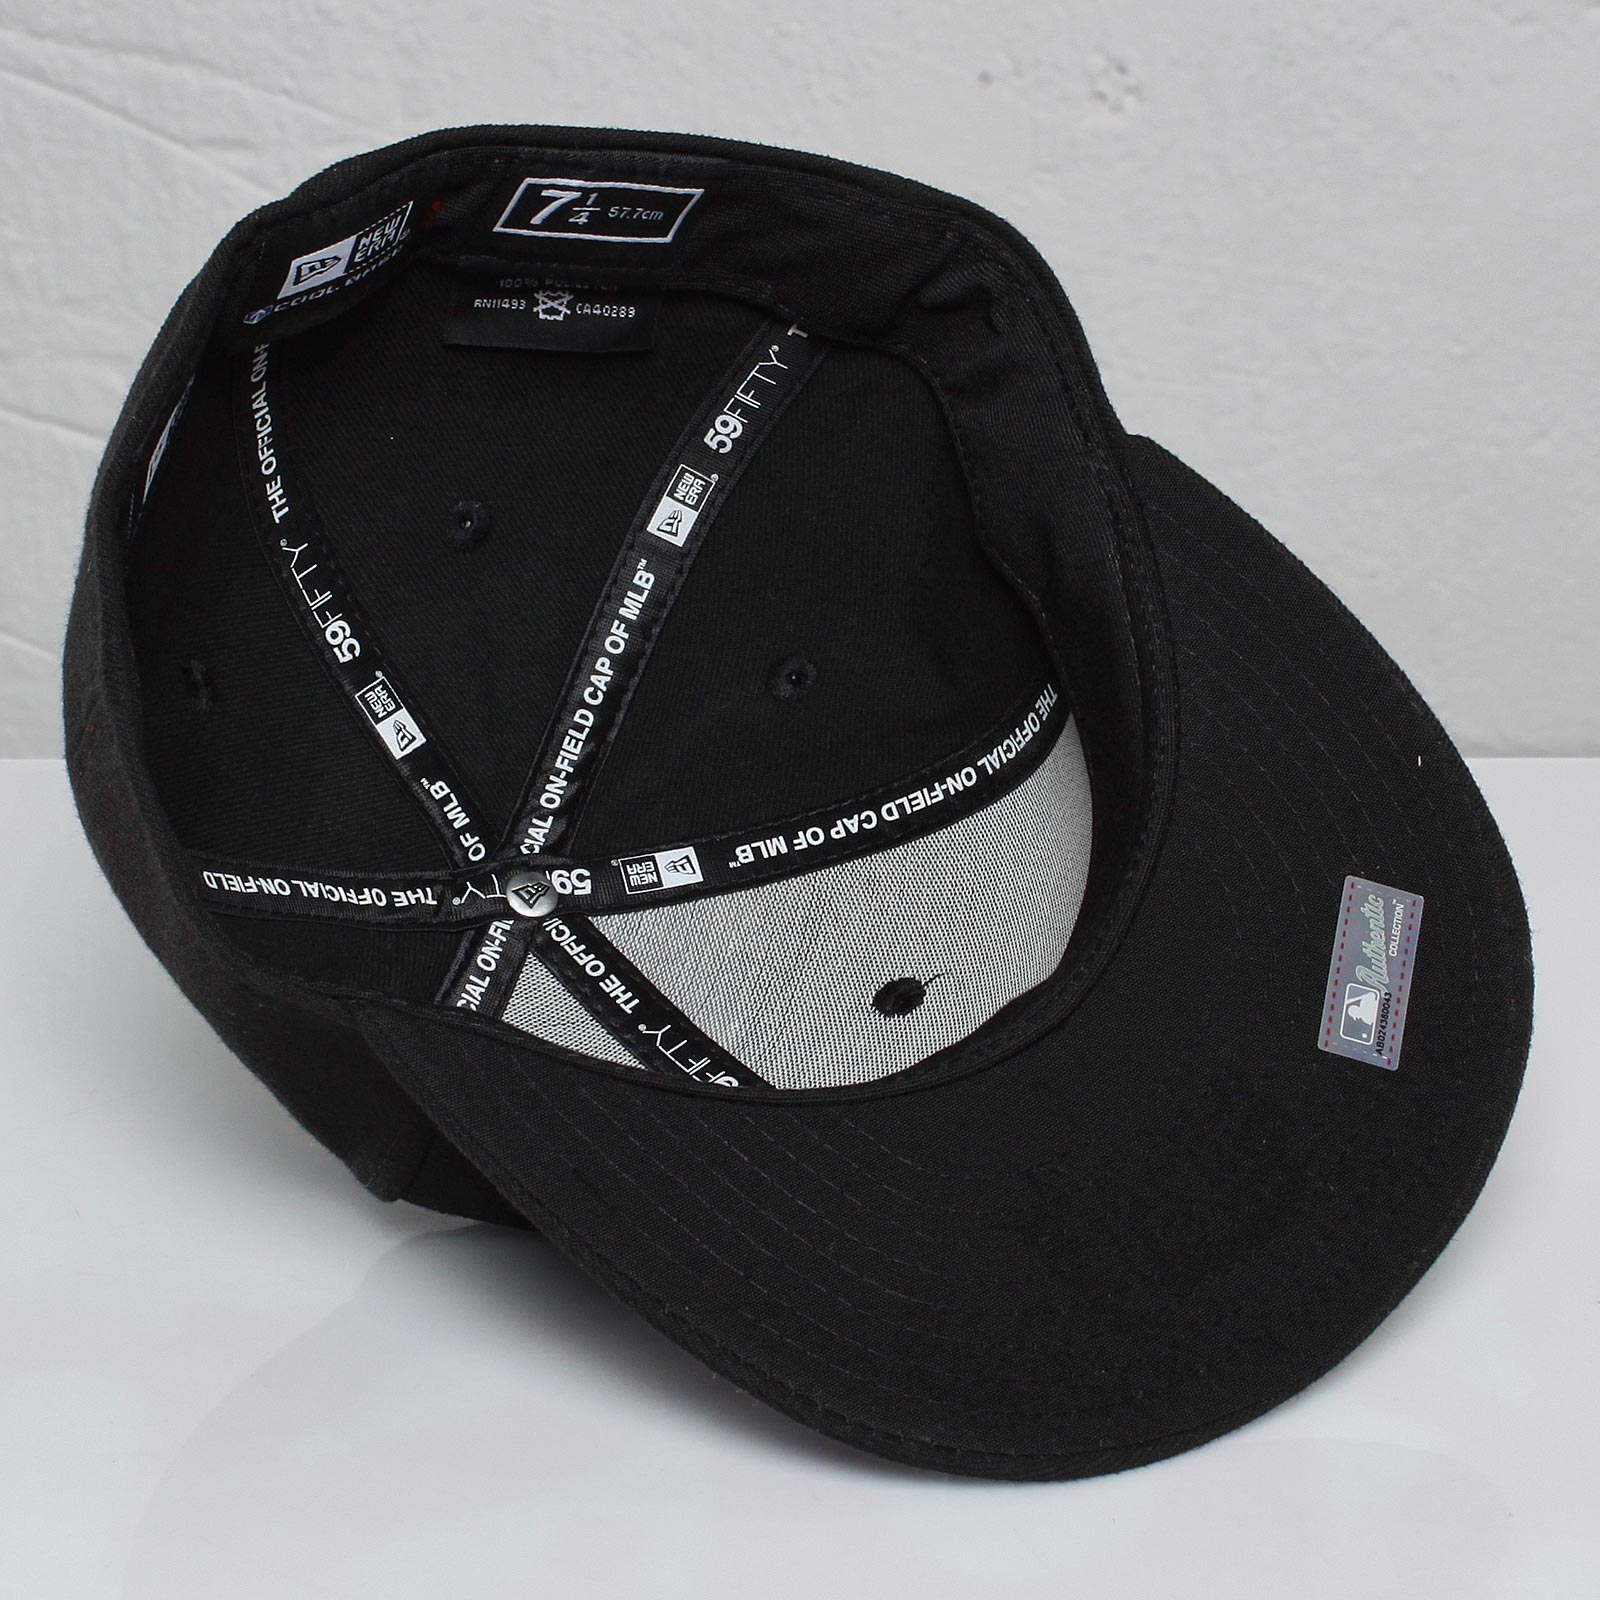 d0cac23650451 New Era Authentic Chicago White Sox Cap - CHIWHIGM - Sneakersnstuff ...